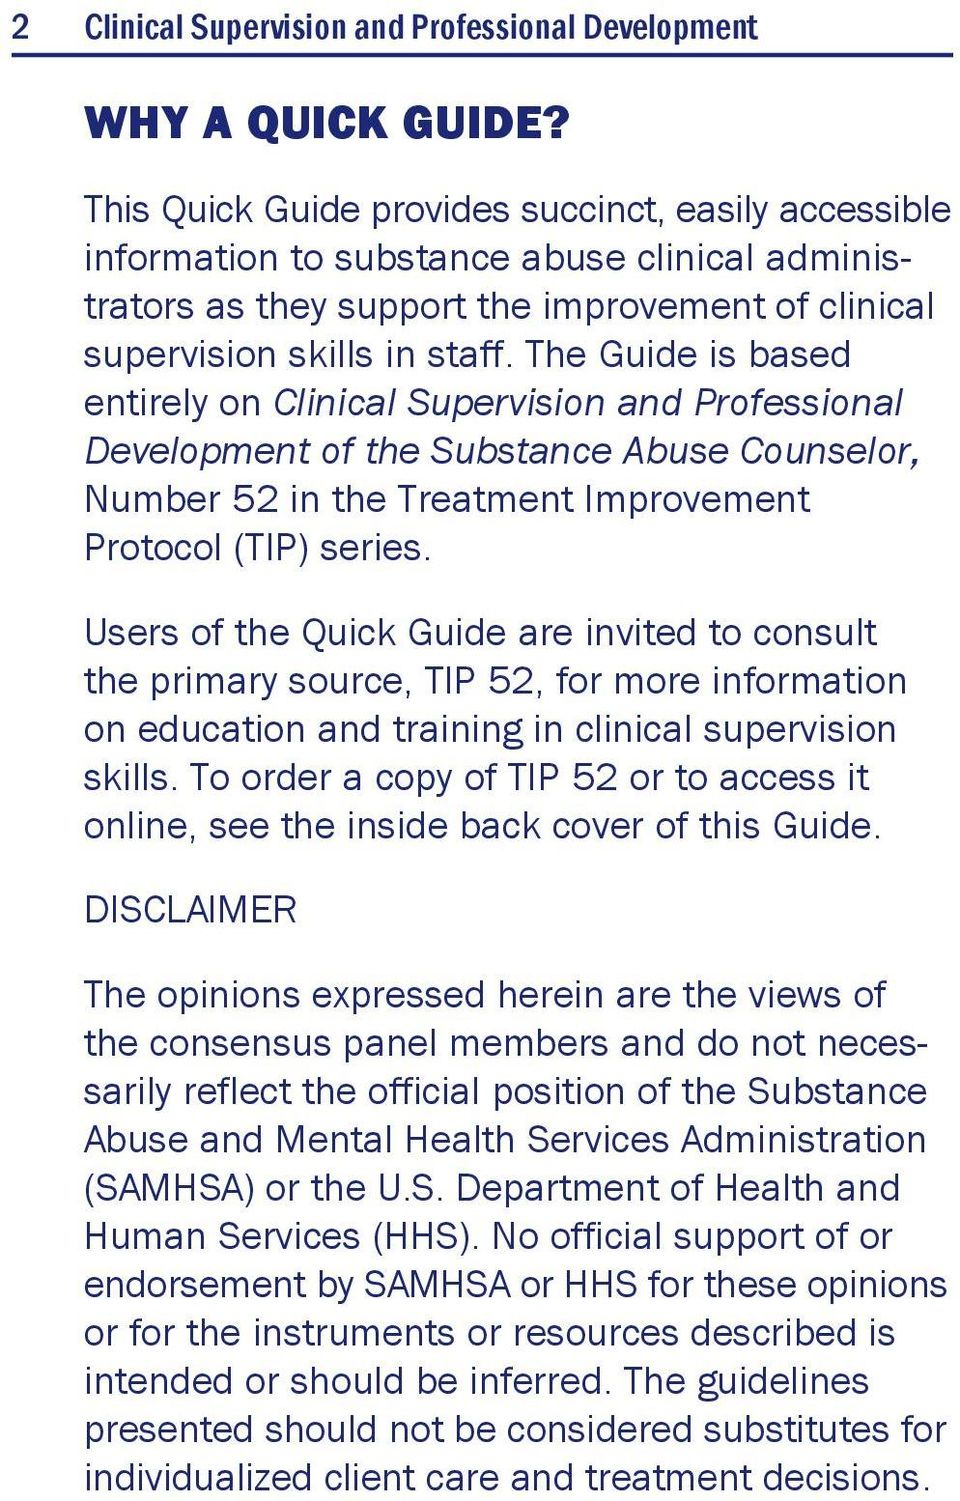 The Guide is based entirely on Clinical Supervision and Professional Development of the Substance Abuse Counselor, Number 52 in the Treatment Improvement Protocol (TIP) series.